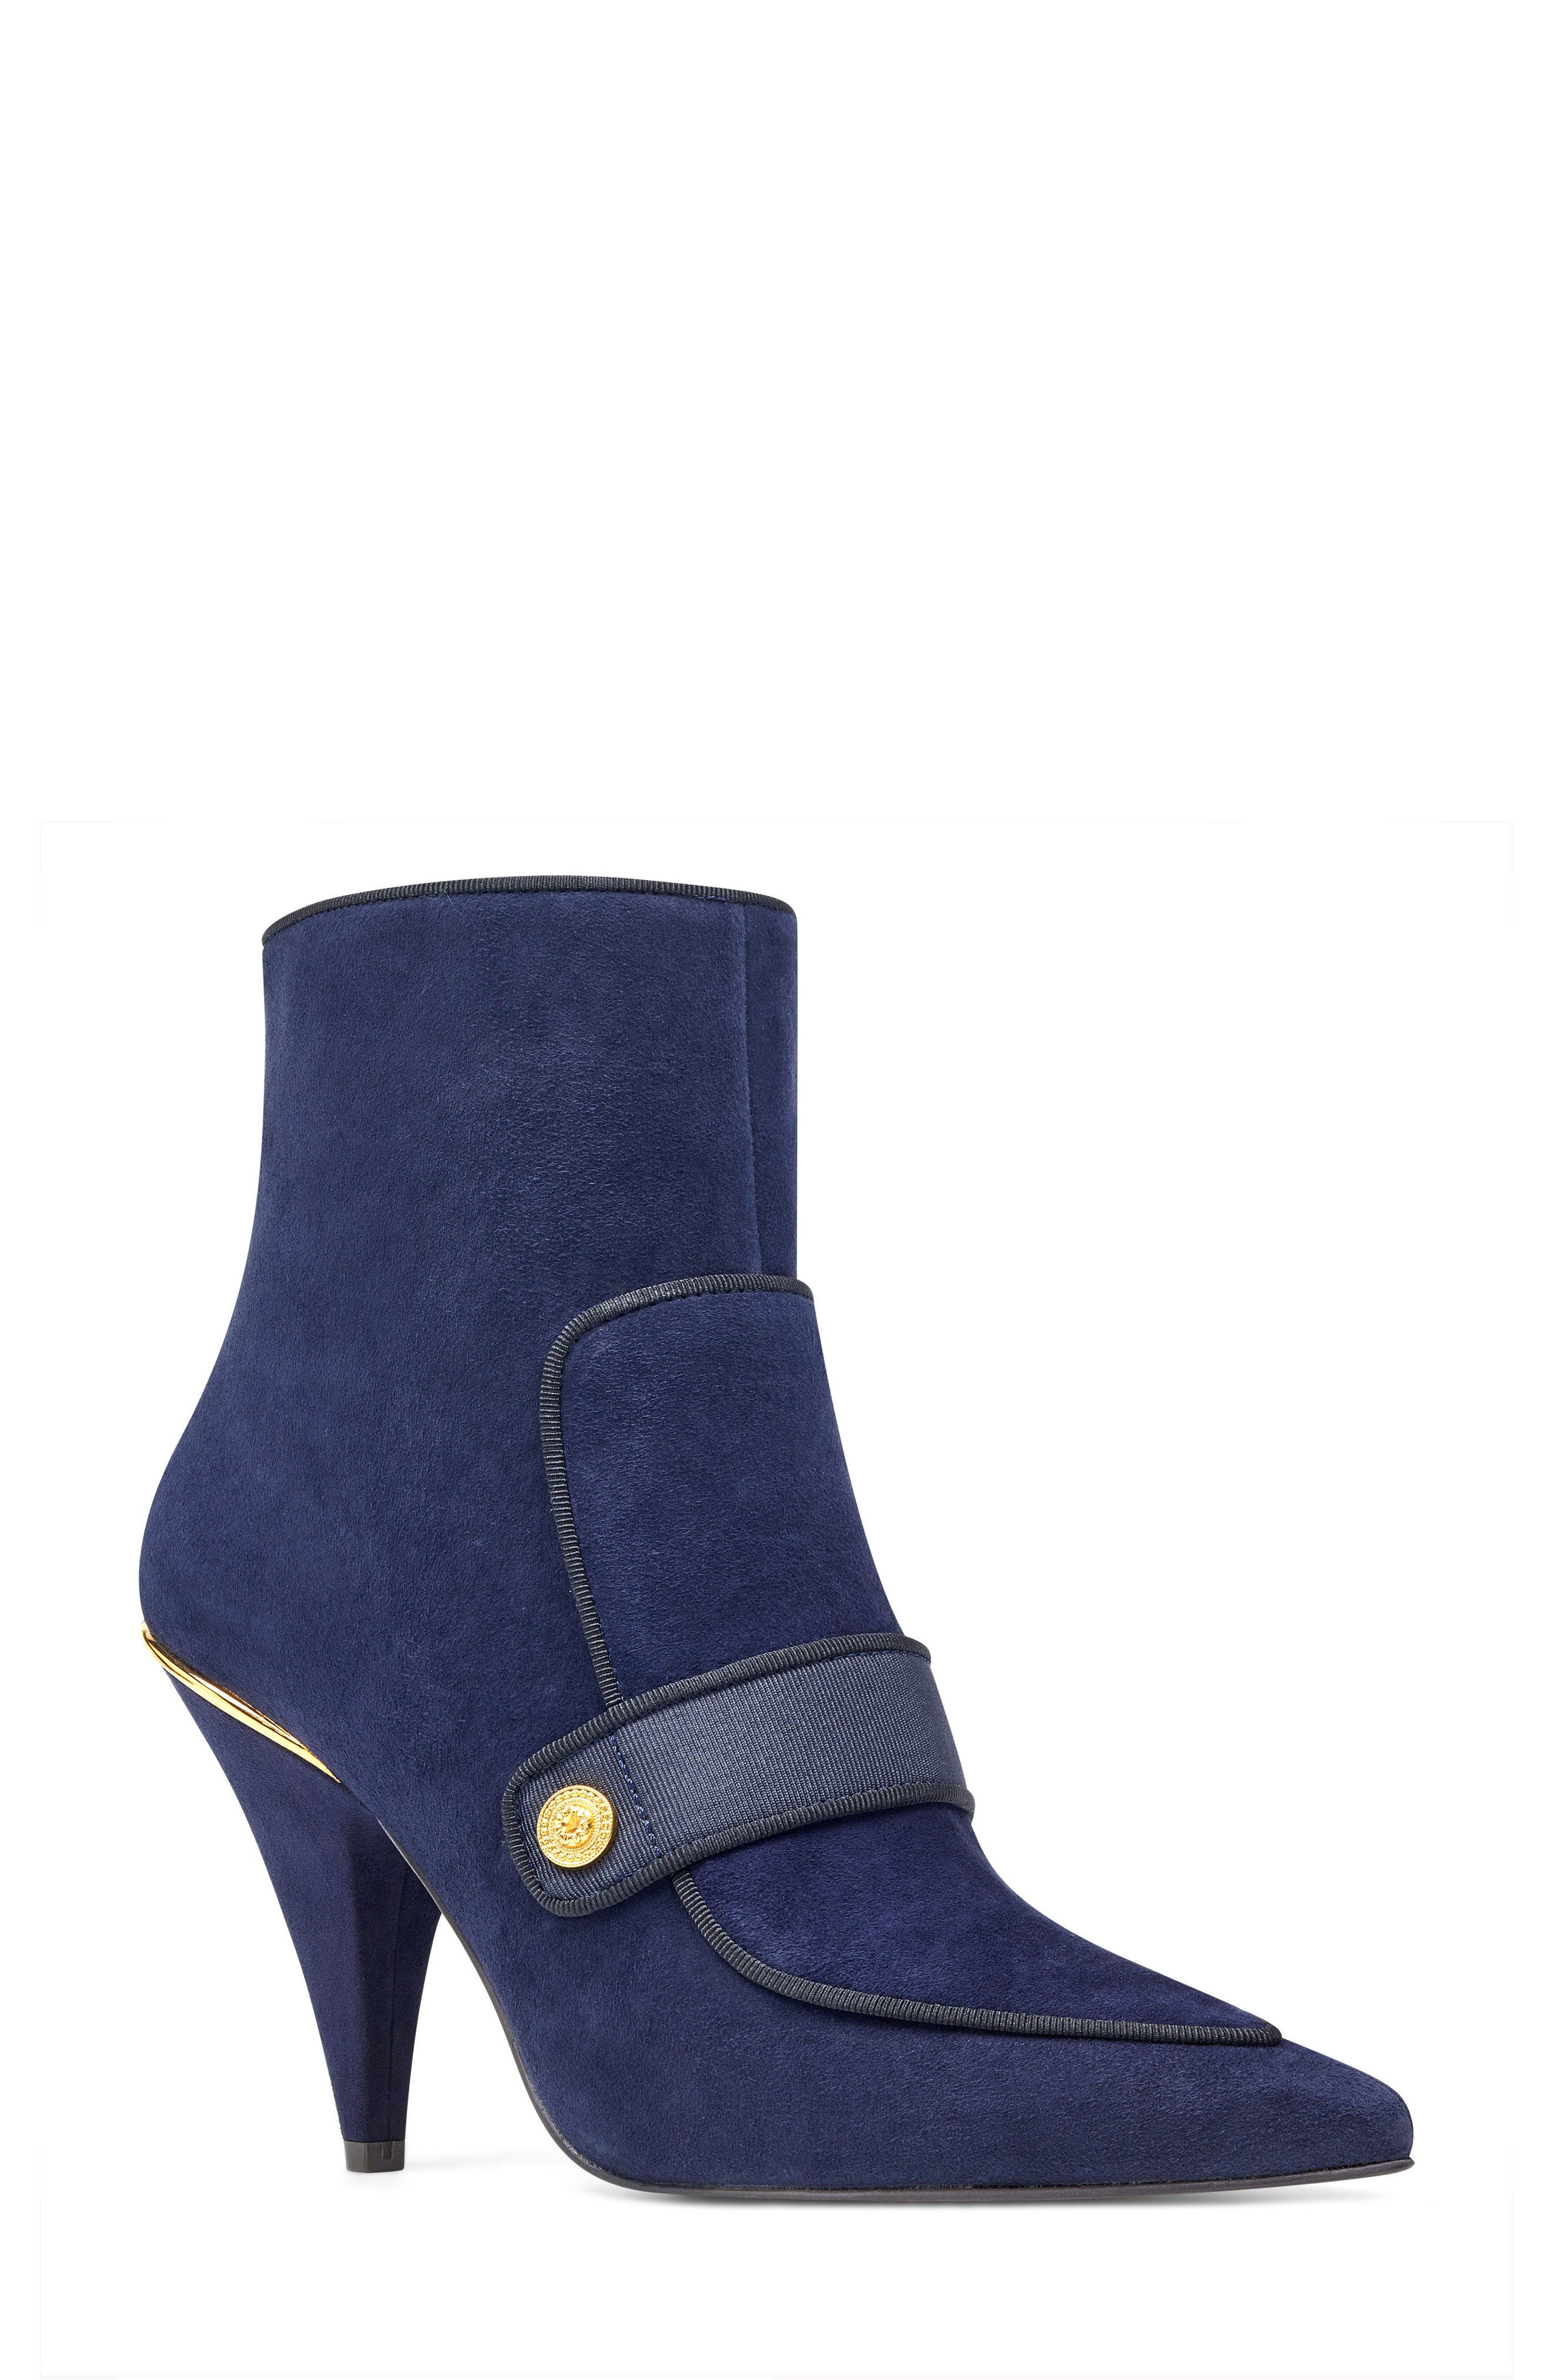 Westham Pointy Toe Bootie,                         Main,                         color, Navy/ Black Suede